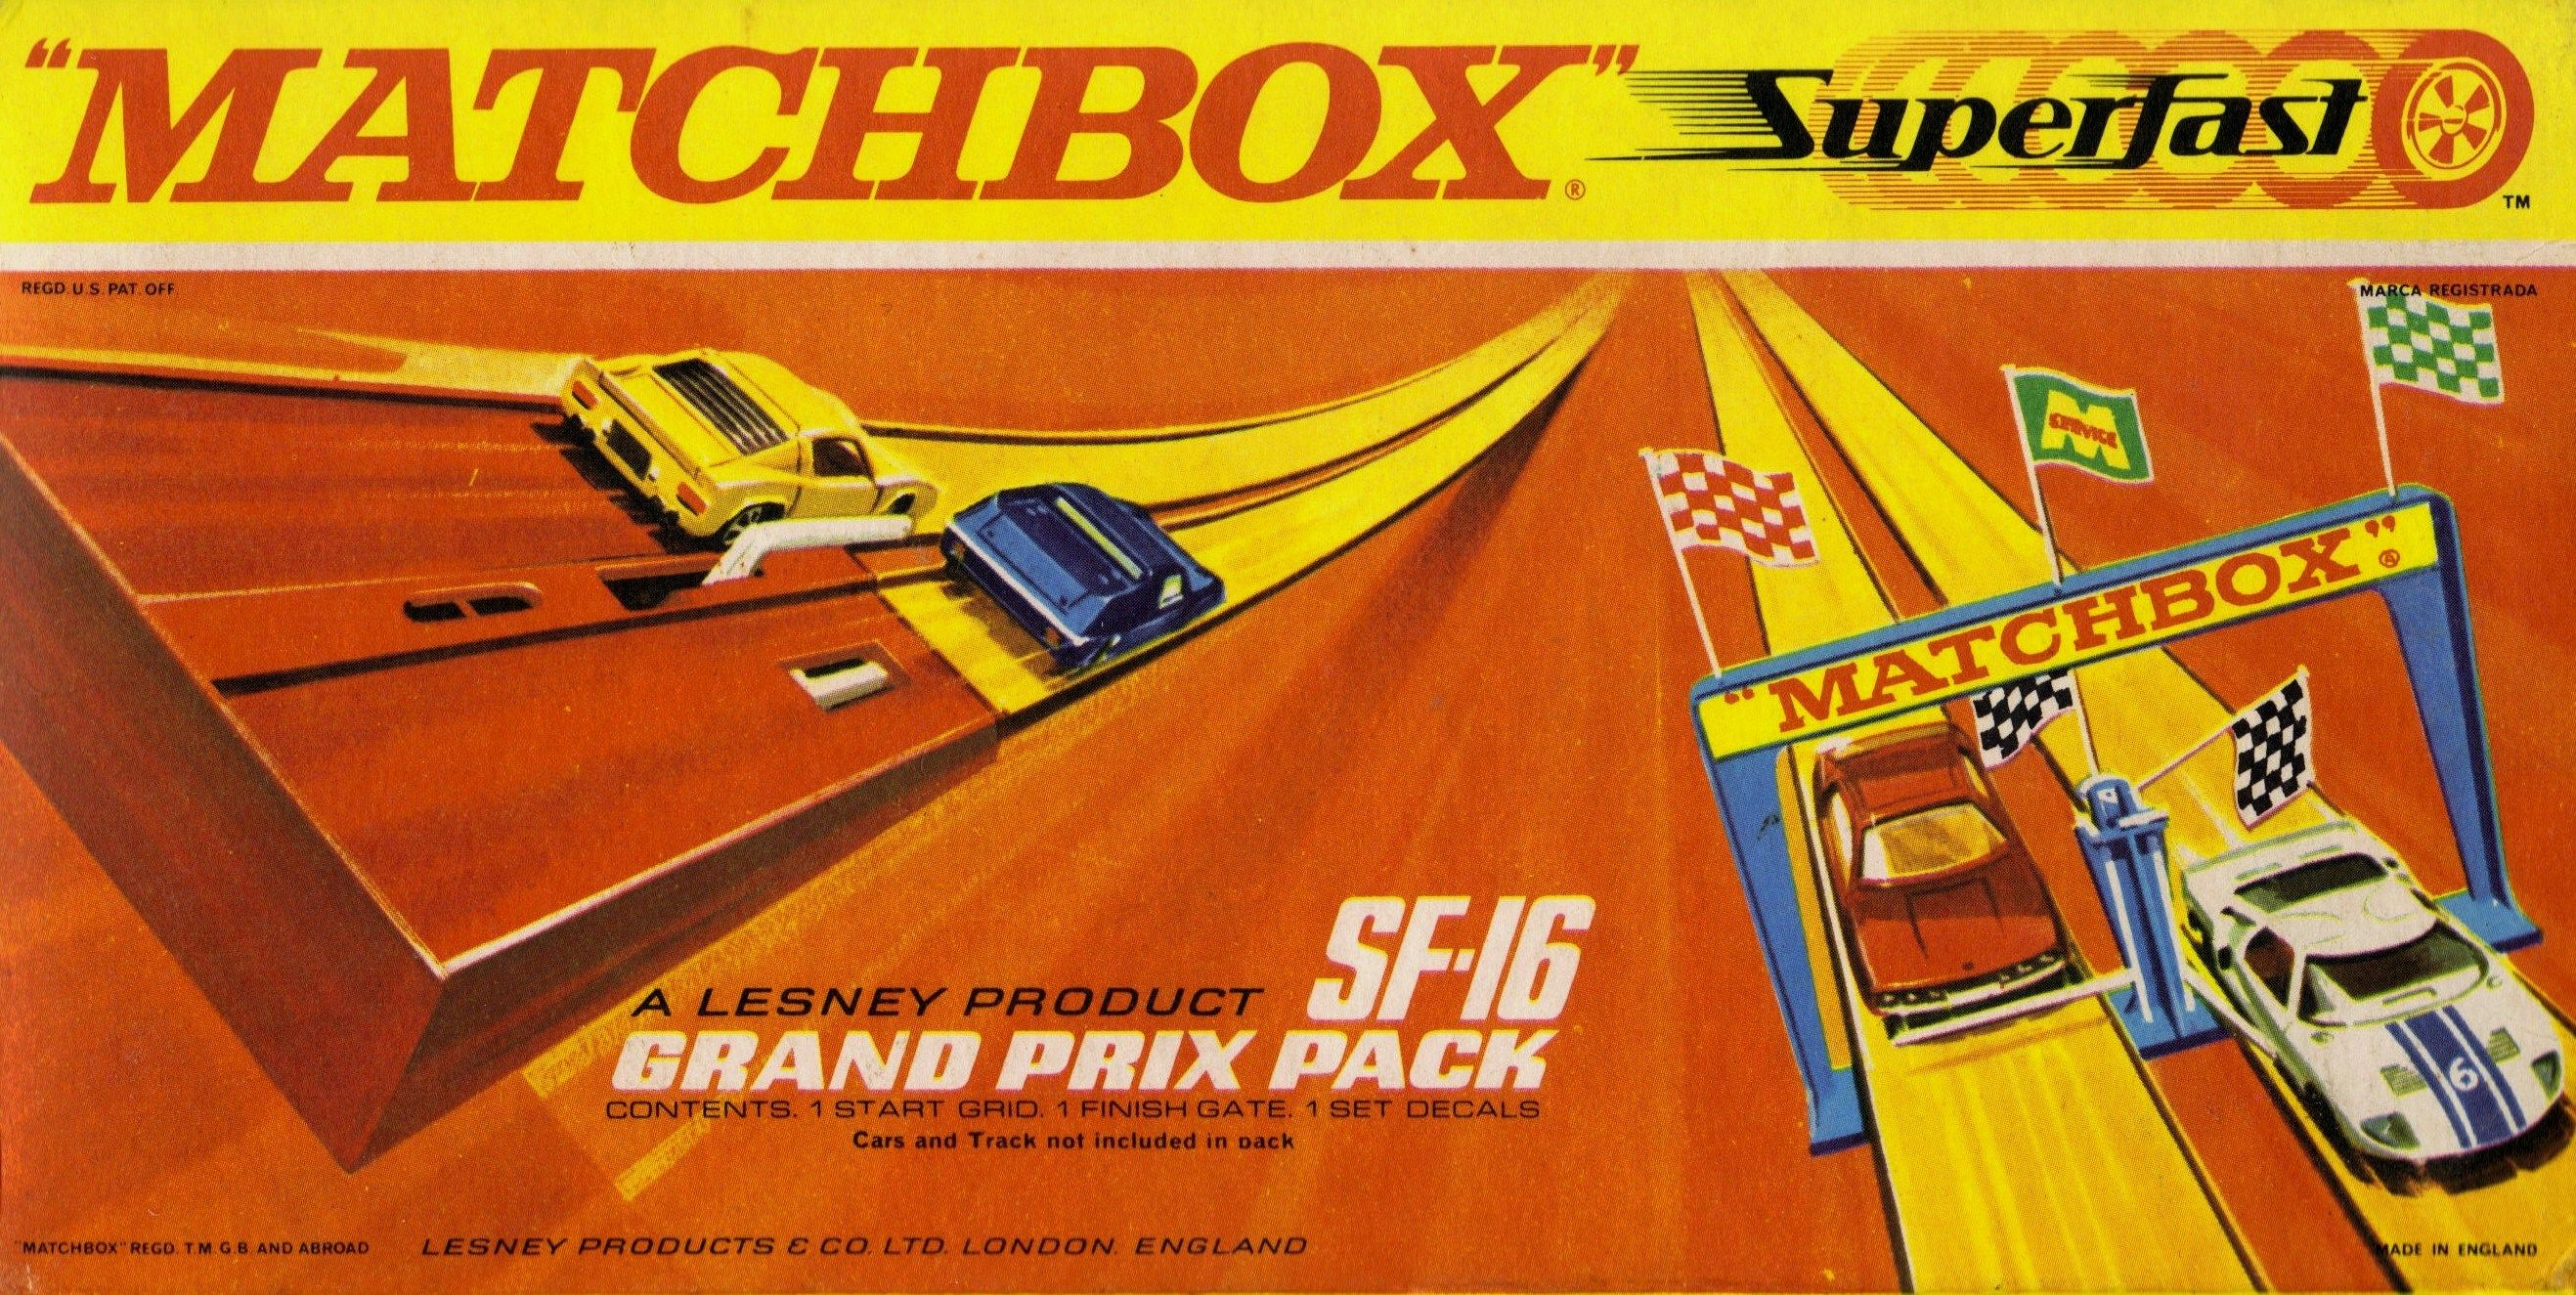 Vintage Toys Wanted By The Toy Exchange A Stunning Piece Of Box Art By Lesney Matchbox Superfast Matchbox Vintage Toys Model Cars Collection